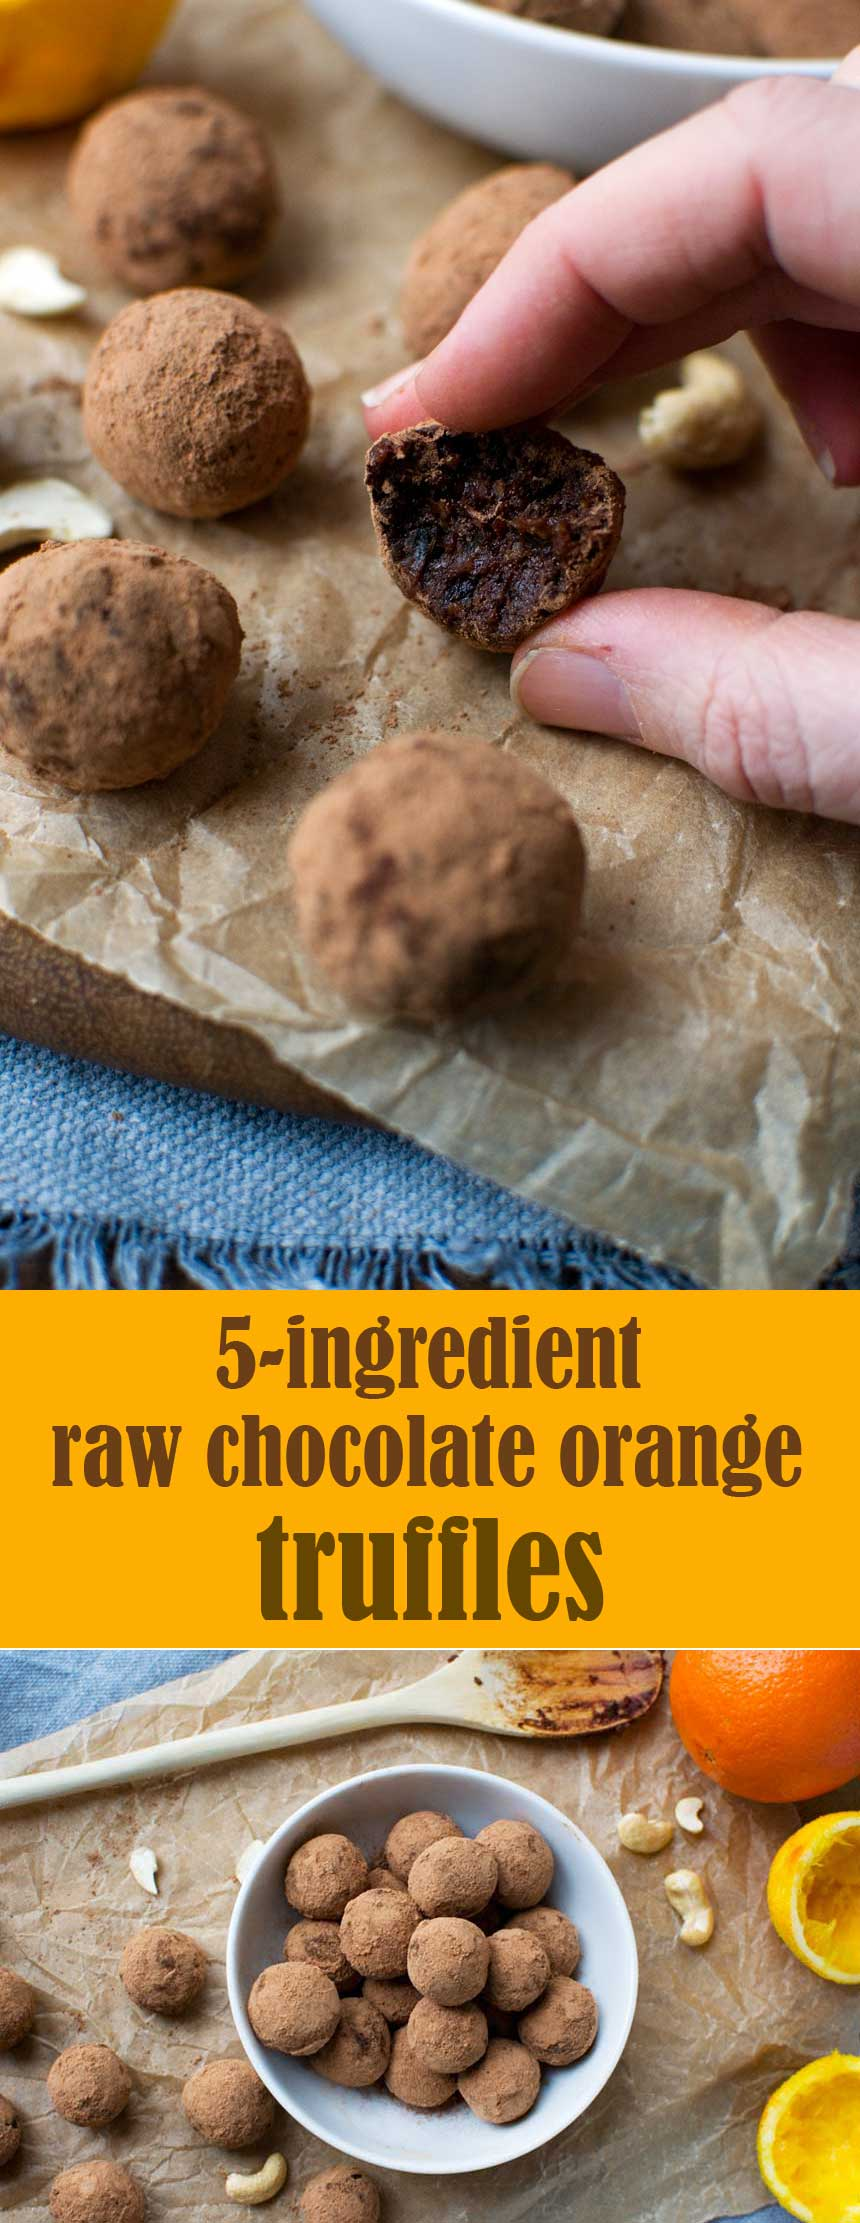 Who doesn't love chocolate truffles? These raw chocolate orangetruffles are made with just 5 super healthy ingredients, but you'll think you're eating a gooey brownie! #truffles #rawfood #raw #glutenfree #chocolate #healthy #chocolateorange #healthysnacks #scrummylane